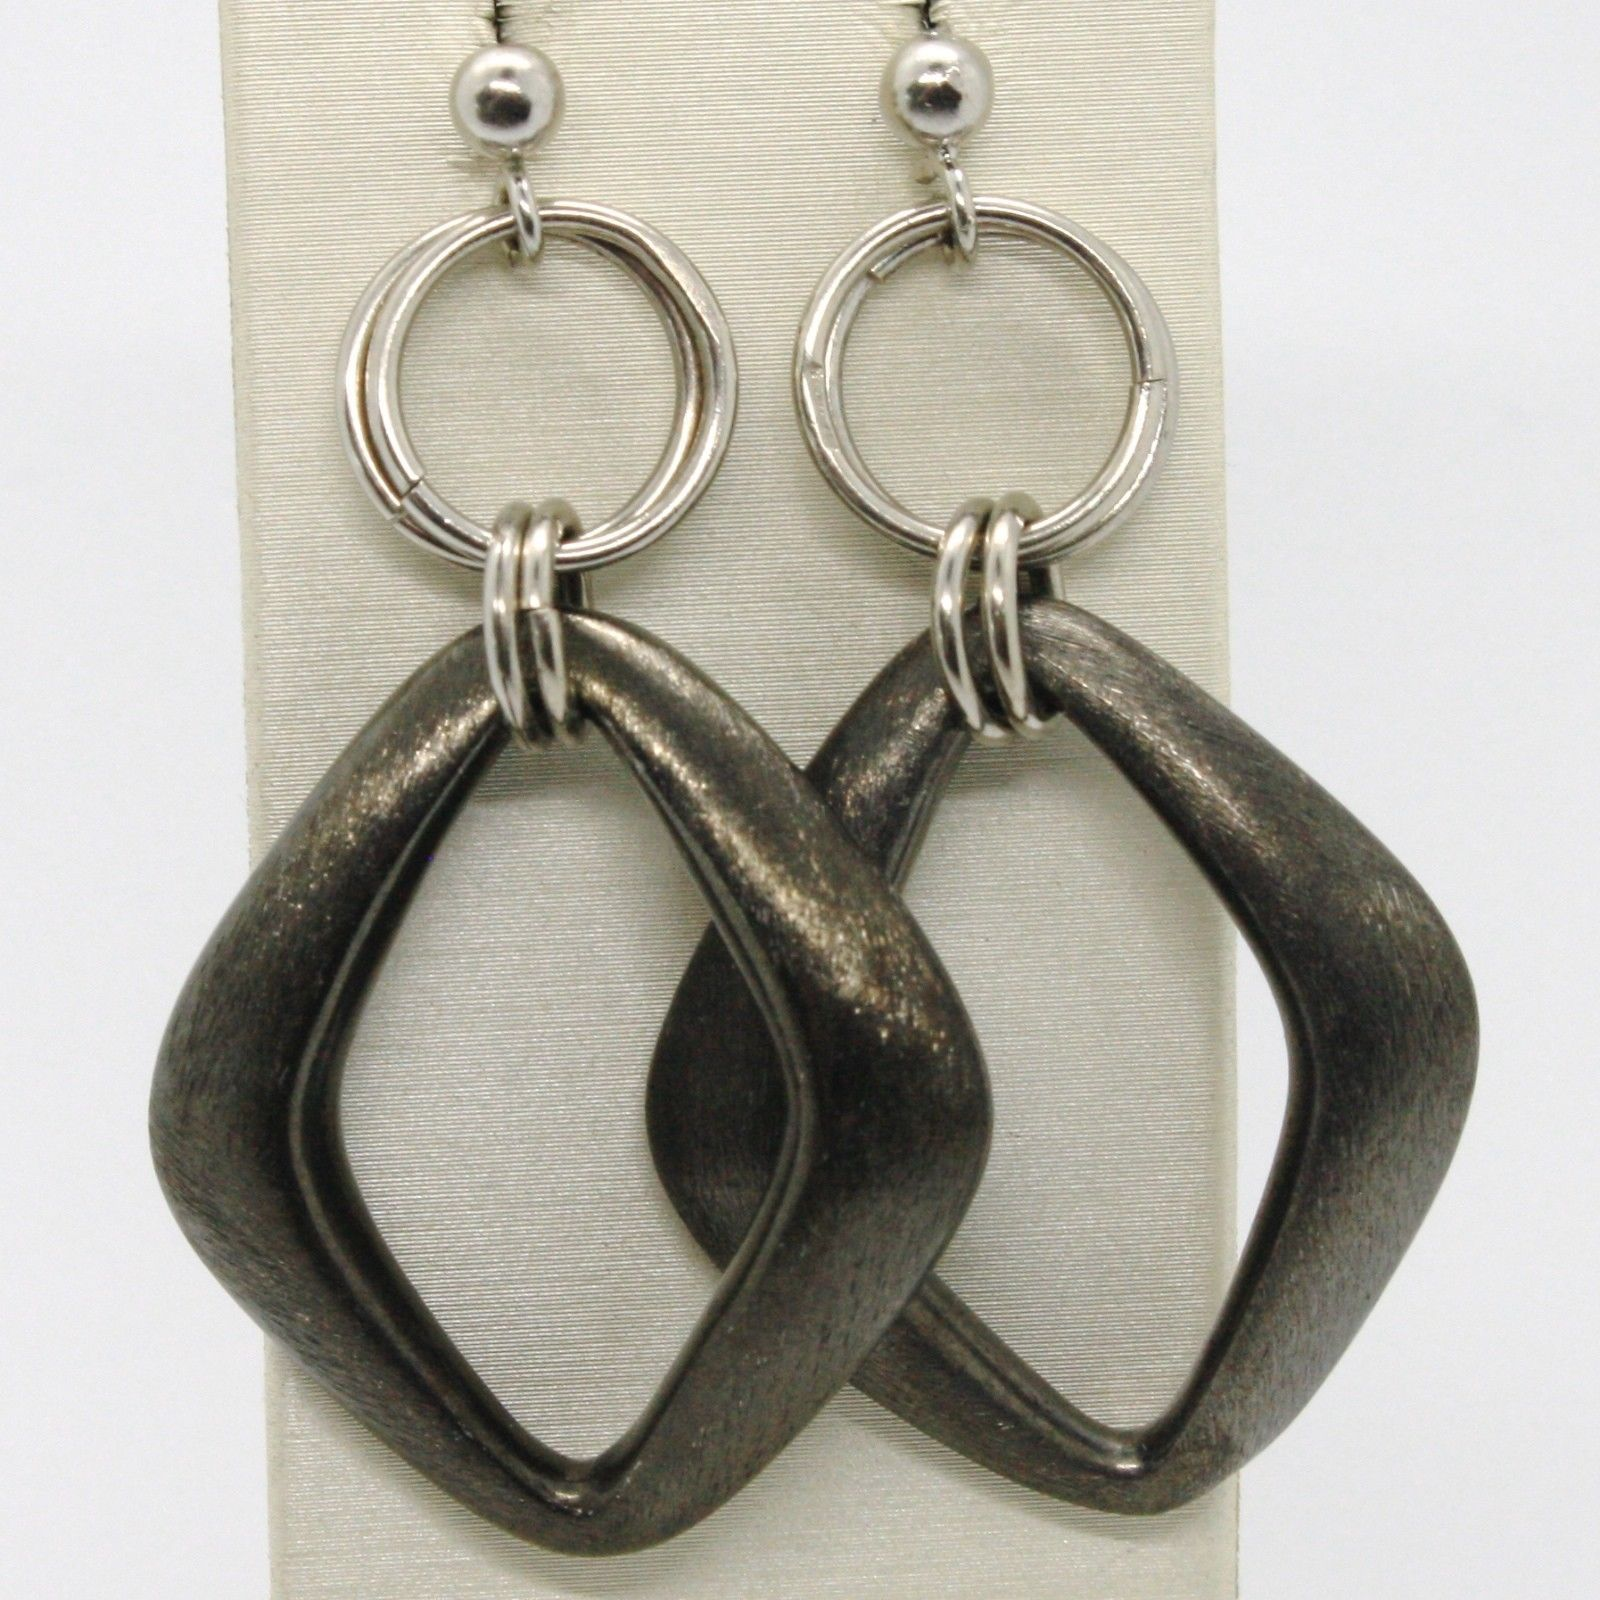 Earrings Silver 925 Run and Burnished Pendant with Argyle Satin Burnished